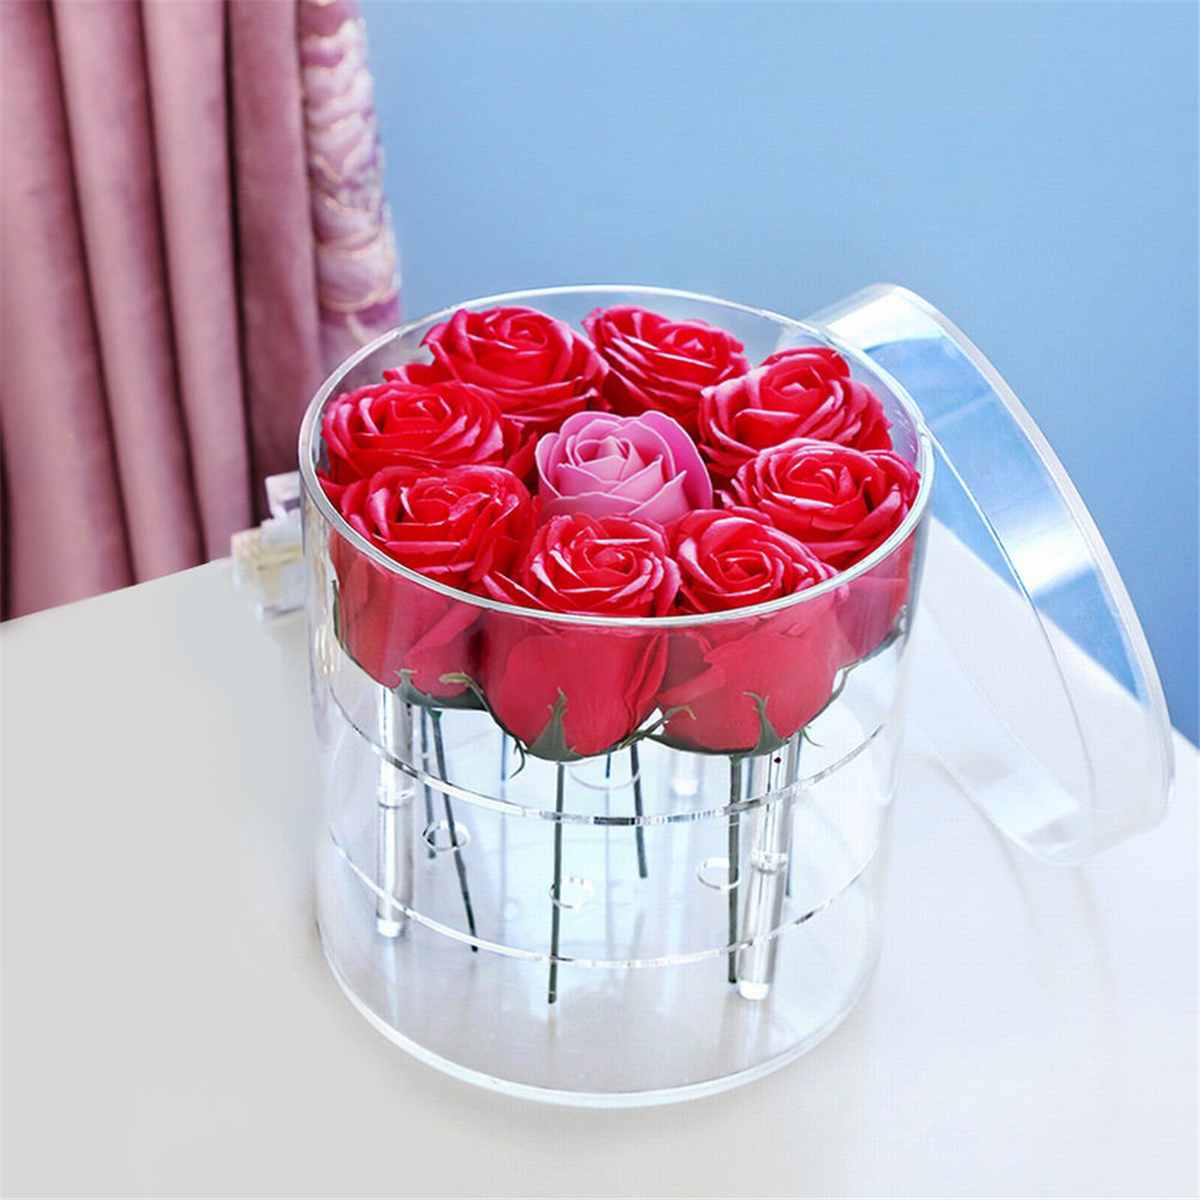 Clear Acrylic Rose Flower Box with Cover Romantic Flower Fresh-keeping Display Box